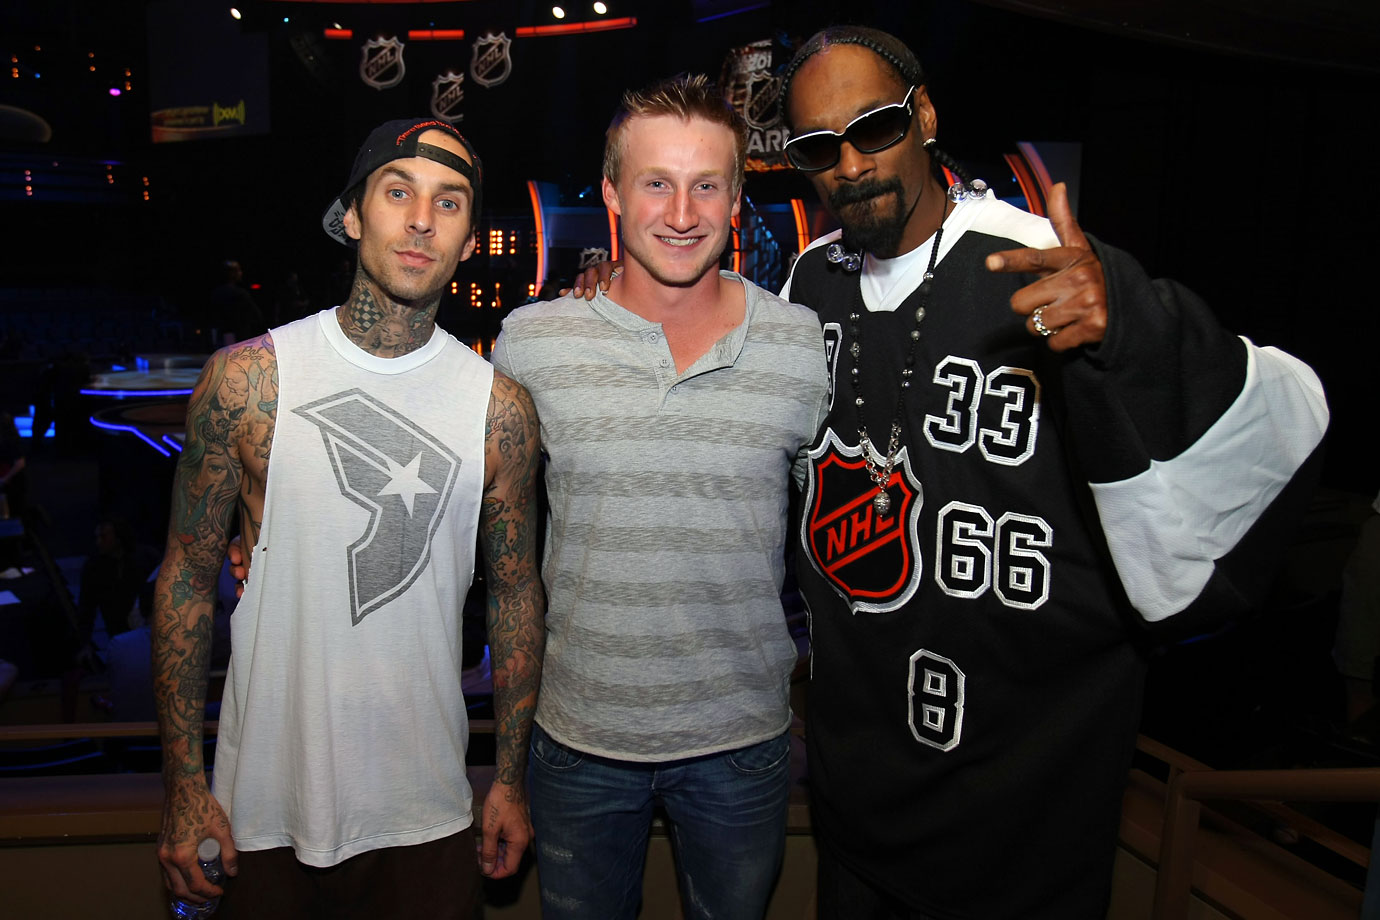 Travis Barker, Steven Stamkos and Snoop Dog pose together during the NHL Awards Show Pre-taping on June 22, 2010 in Pearl at The Palms in Las Vegas.